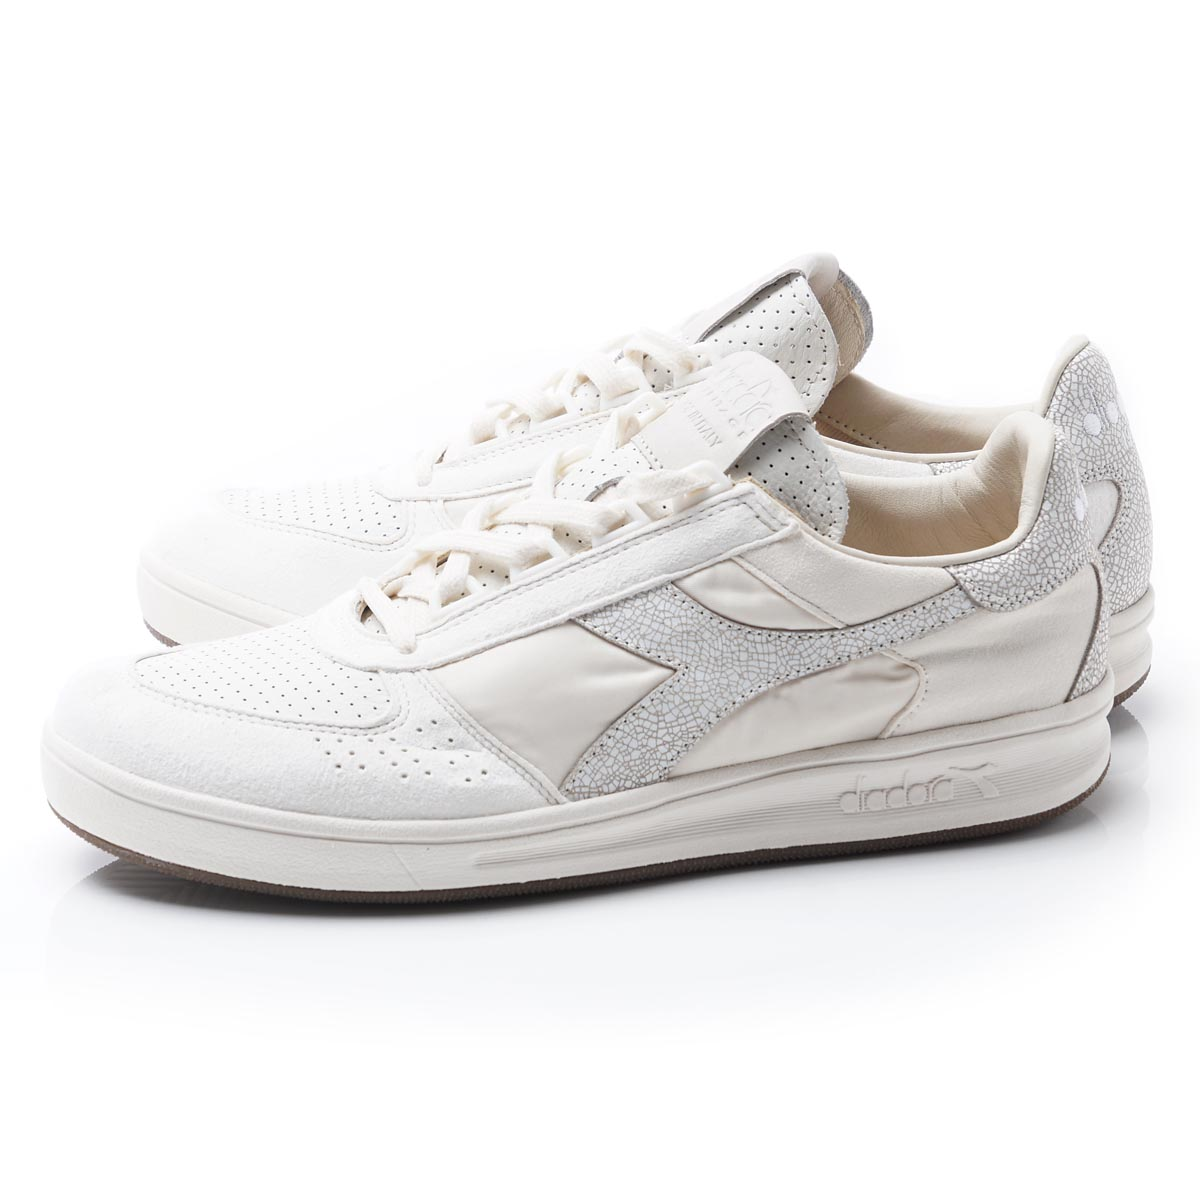 diadora diadora HERITAGE運動鞋B.ELITE ITA WHITE PACK WHISPERWHITE淺駝色派b elite ita white pack 171904 20009人